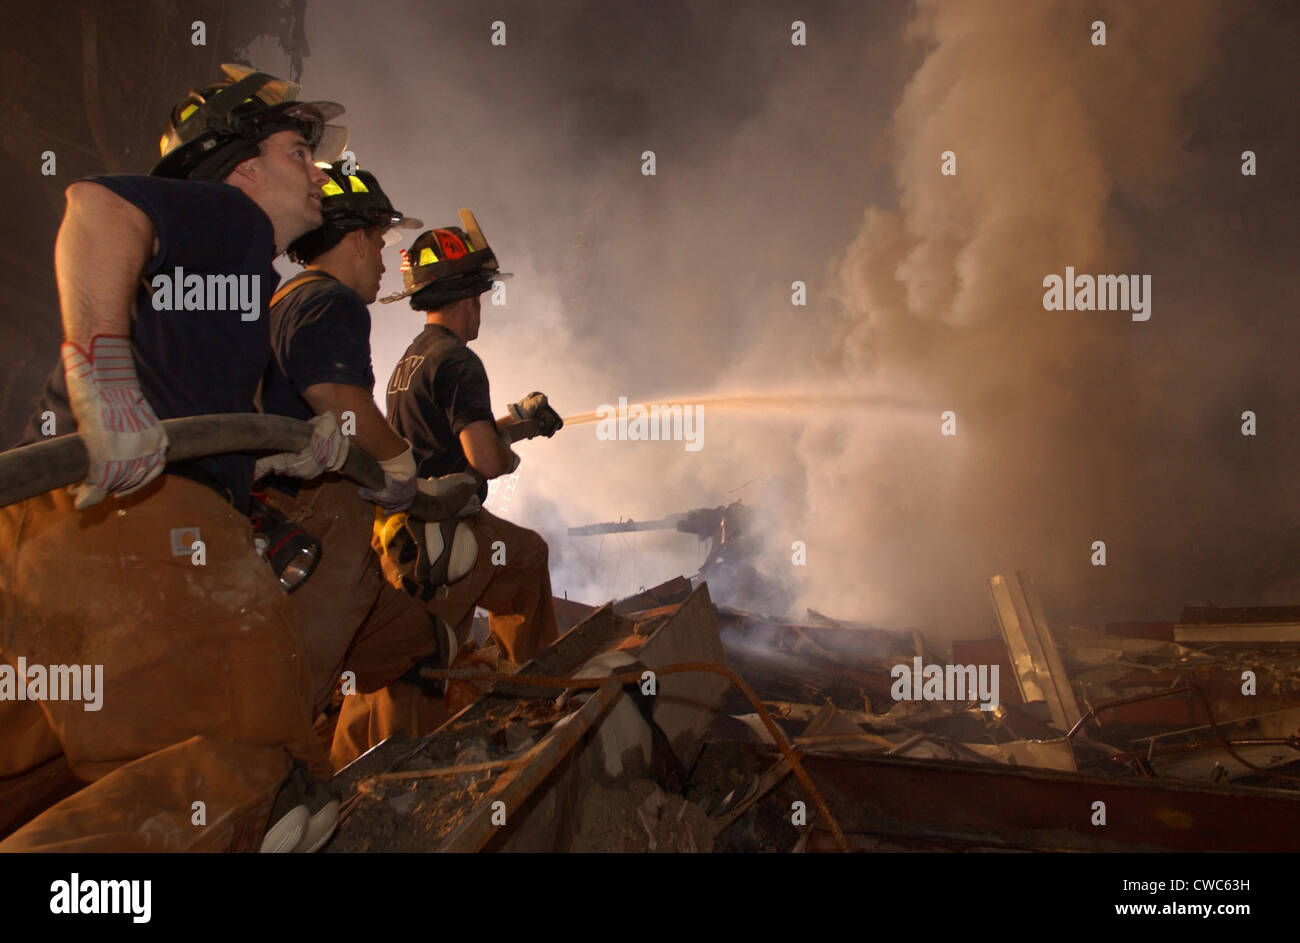 New York firefighters continue to battle blazes at Ground Zero eight days after the 9-11 terrorist attacks. Sept. - Stock Image